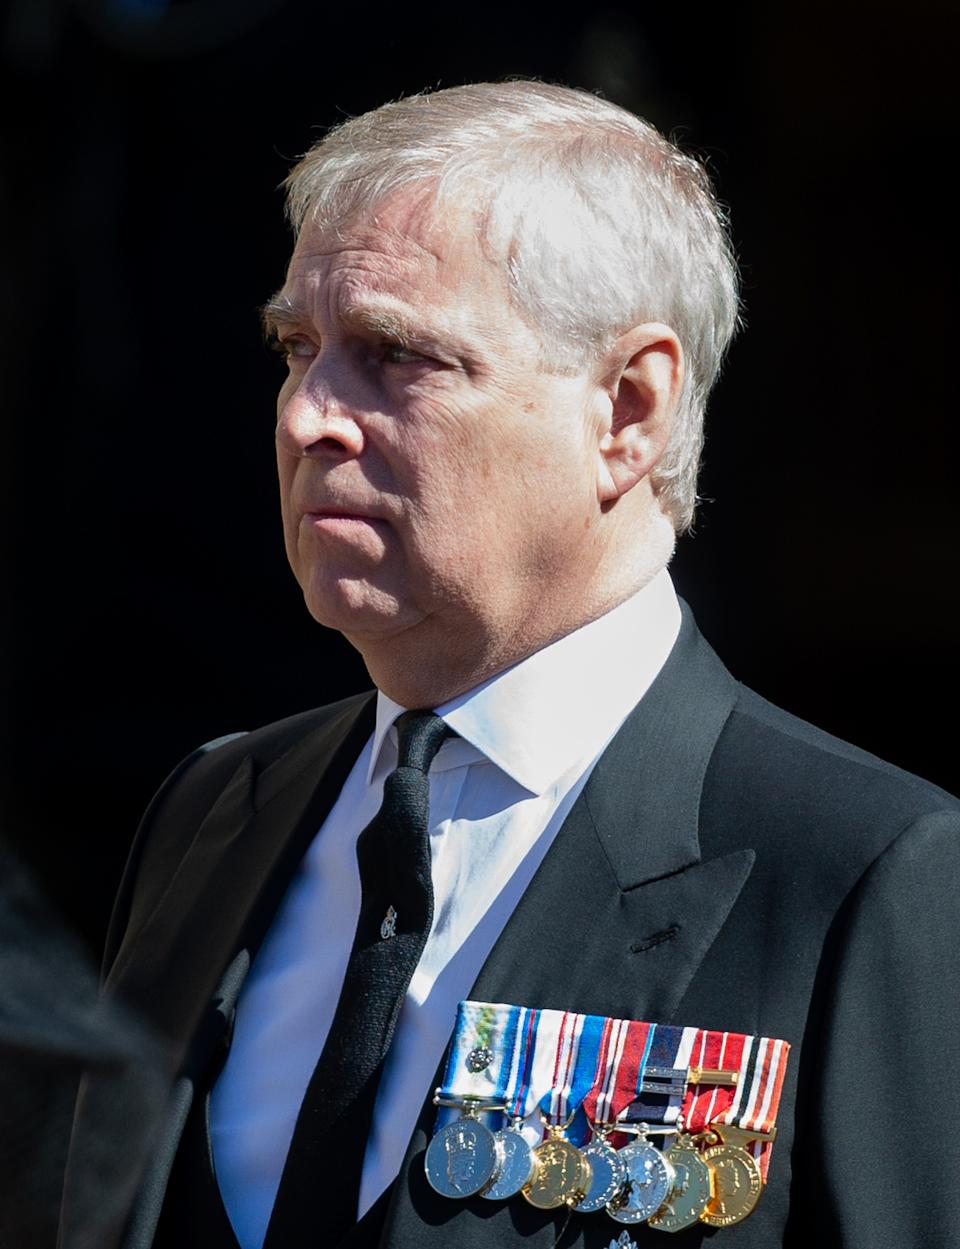 WINDSOR, ENGLAND - APRIL 17: Prince Andrew, Duke of York looks on as the coffin of Prince Philip, Duke of Edinburgh arrives St George's Chapel in a purpose build Land Rover during the funeral of Prince Philip, Duke of Edinburgh on April 17, 2021 in Windsor, England. Prince Philip of Greece and Denmark was born 10 June 1921, in Greece. He served in the British Royal Navy and fought in WWII. He married the then Princess Elizabeth on 20 November 1947 and was created Duke of Edinburgh, Earl of Merioneth, and Baron Greenwich by King VI. He served as Prince Consort to Queen Elizabeth II until his death on April 9 2021, months short of his 100th birthday. His funeral takes place today at Windsor Castle with only 30 guests invited due to Coronavirus pandemic restrictions. (Photo by Pool/Samir Hussein/WireImage)